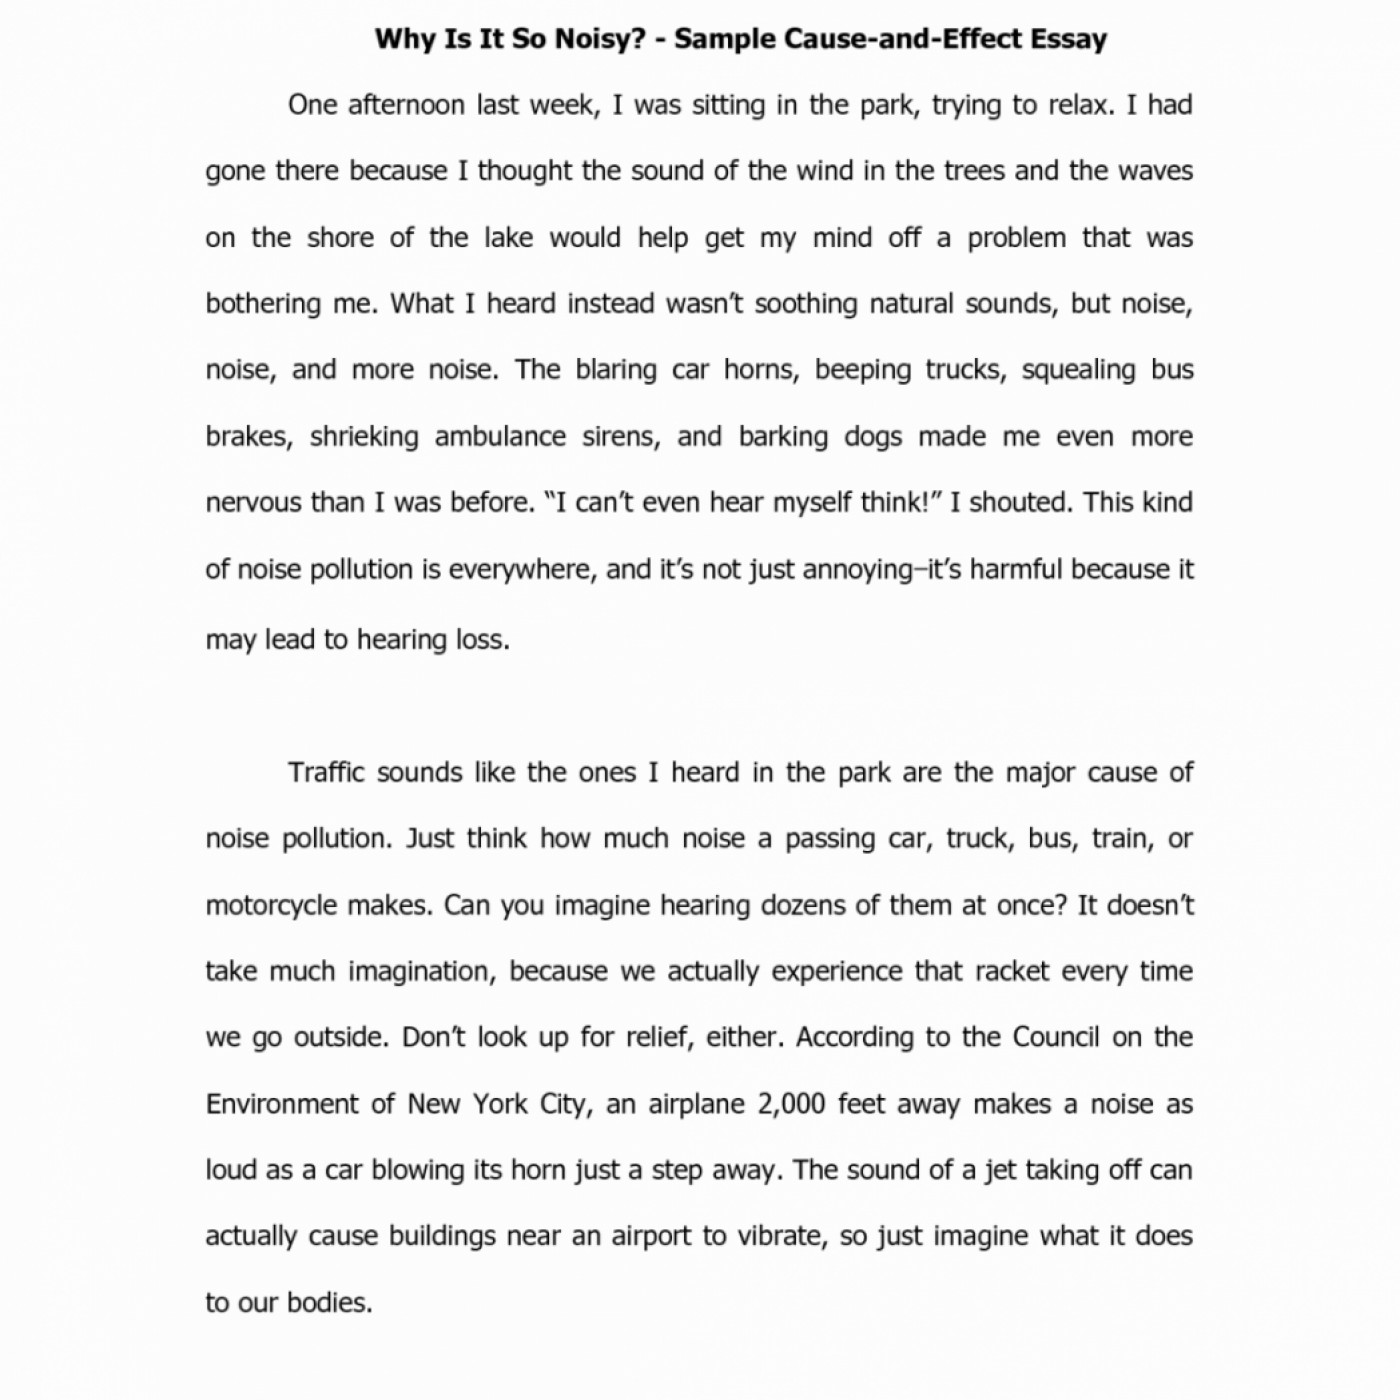 027 Cause And Effect Essays Format Best Of For Or Good Cover Bystander Domino Analysis Ielts Free 6th Grade College Pdf Middle School 1048x1048 Amazing Essay Examples Writing 1400